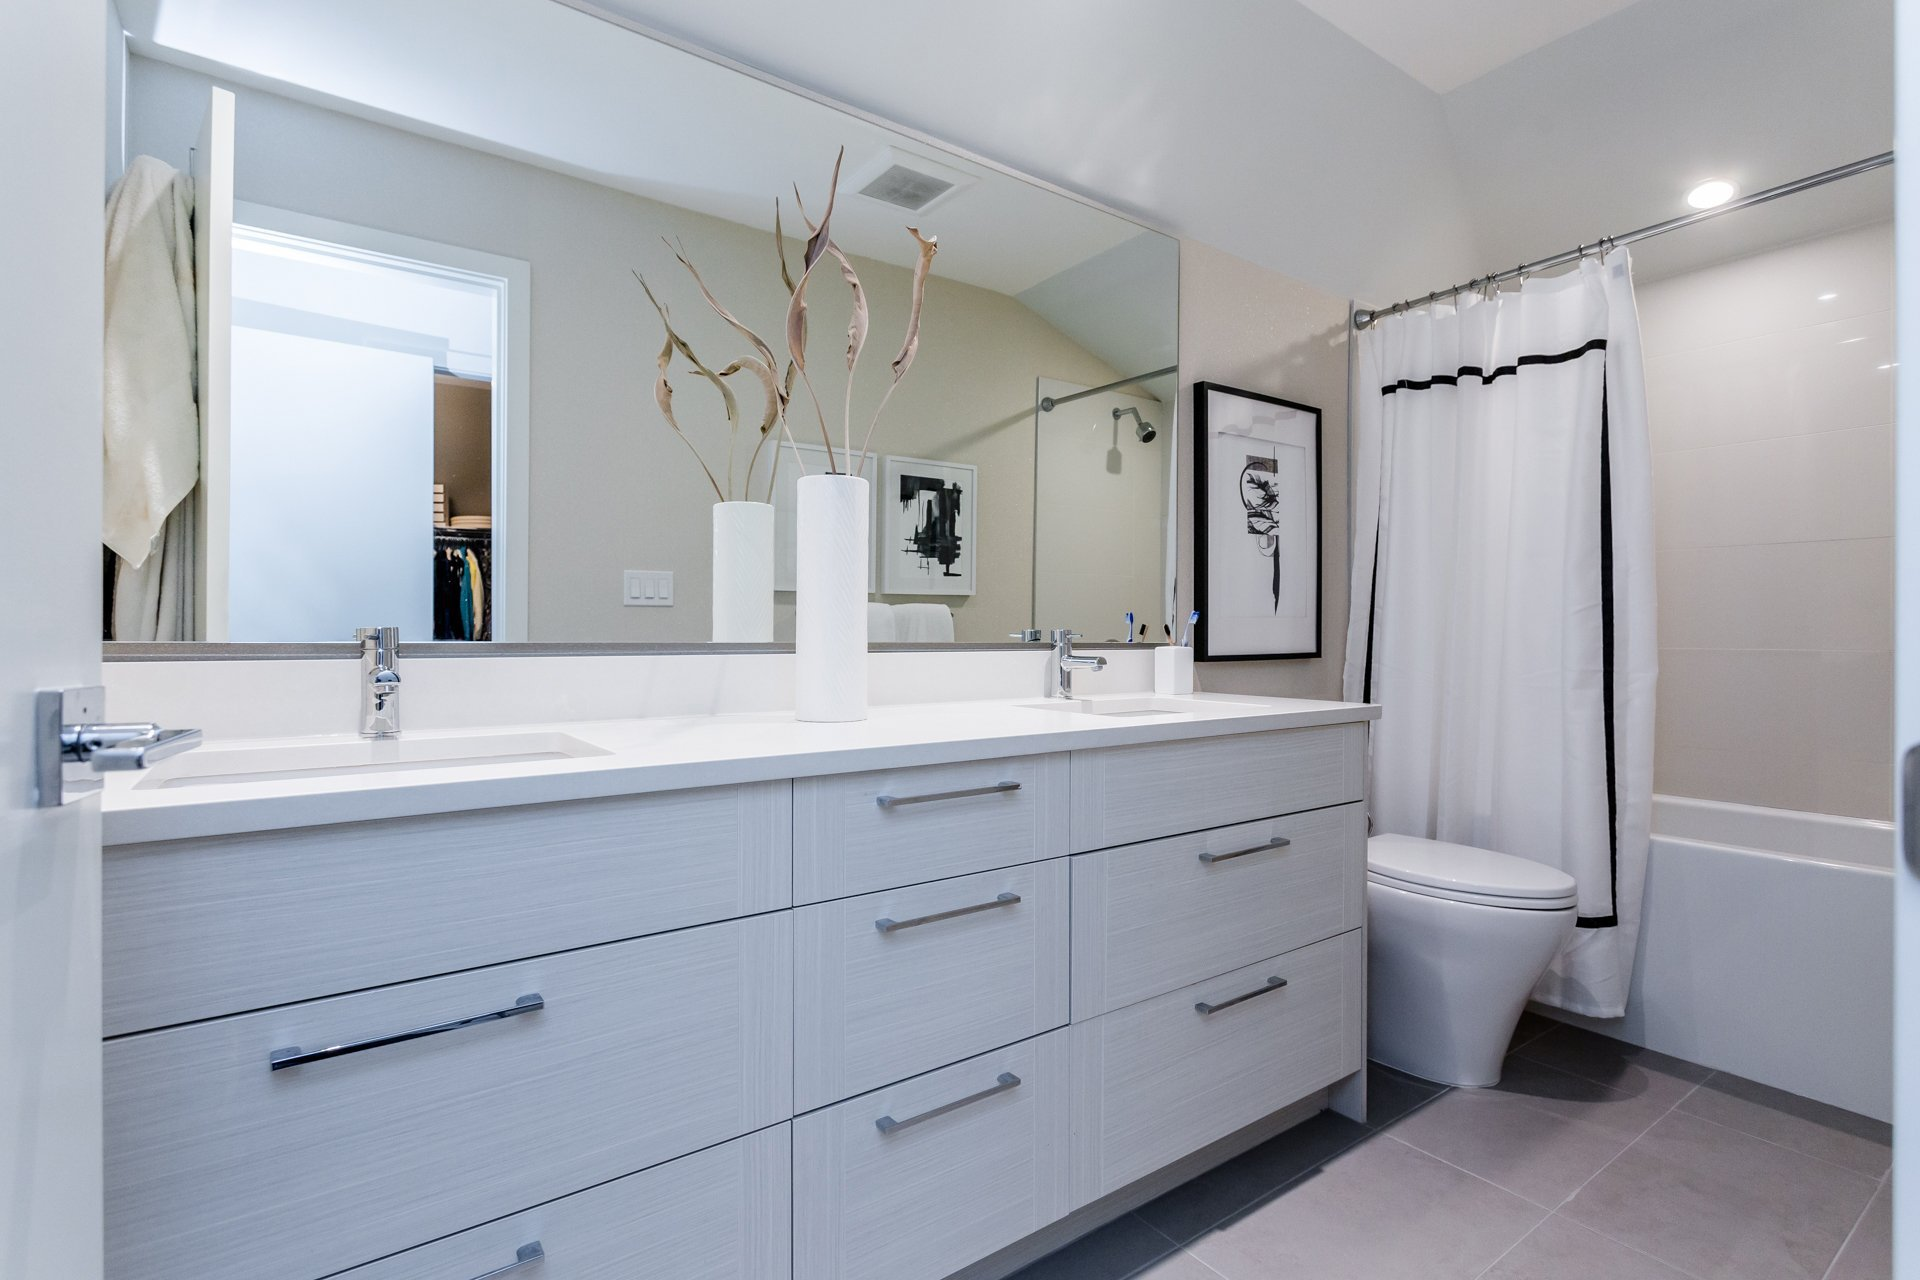 """Photo 29: Photos: 8 8217 204B Street in Langley: Willoughby Heights Townhouse for sale in """"EVERLY GREEN"""" : MLS®# R2236678"""